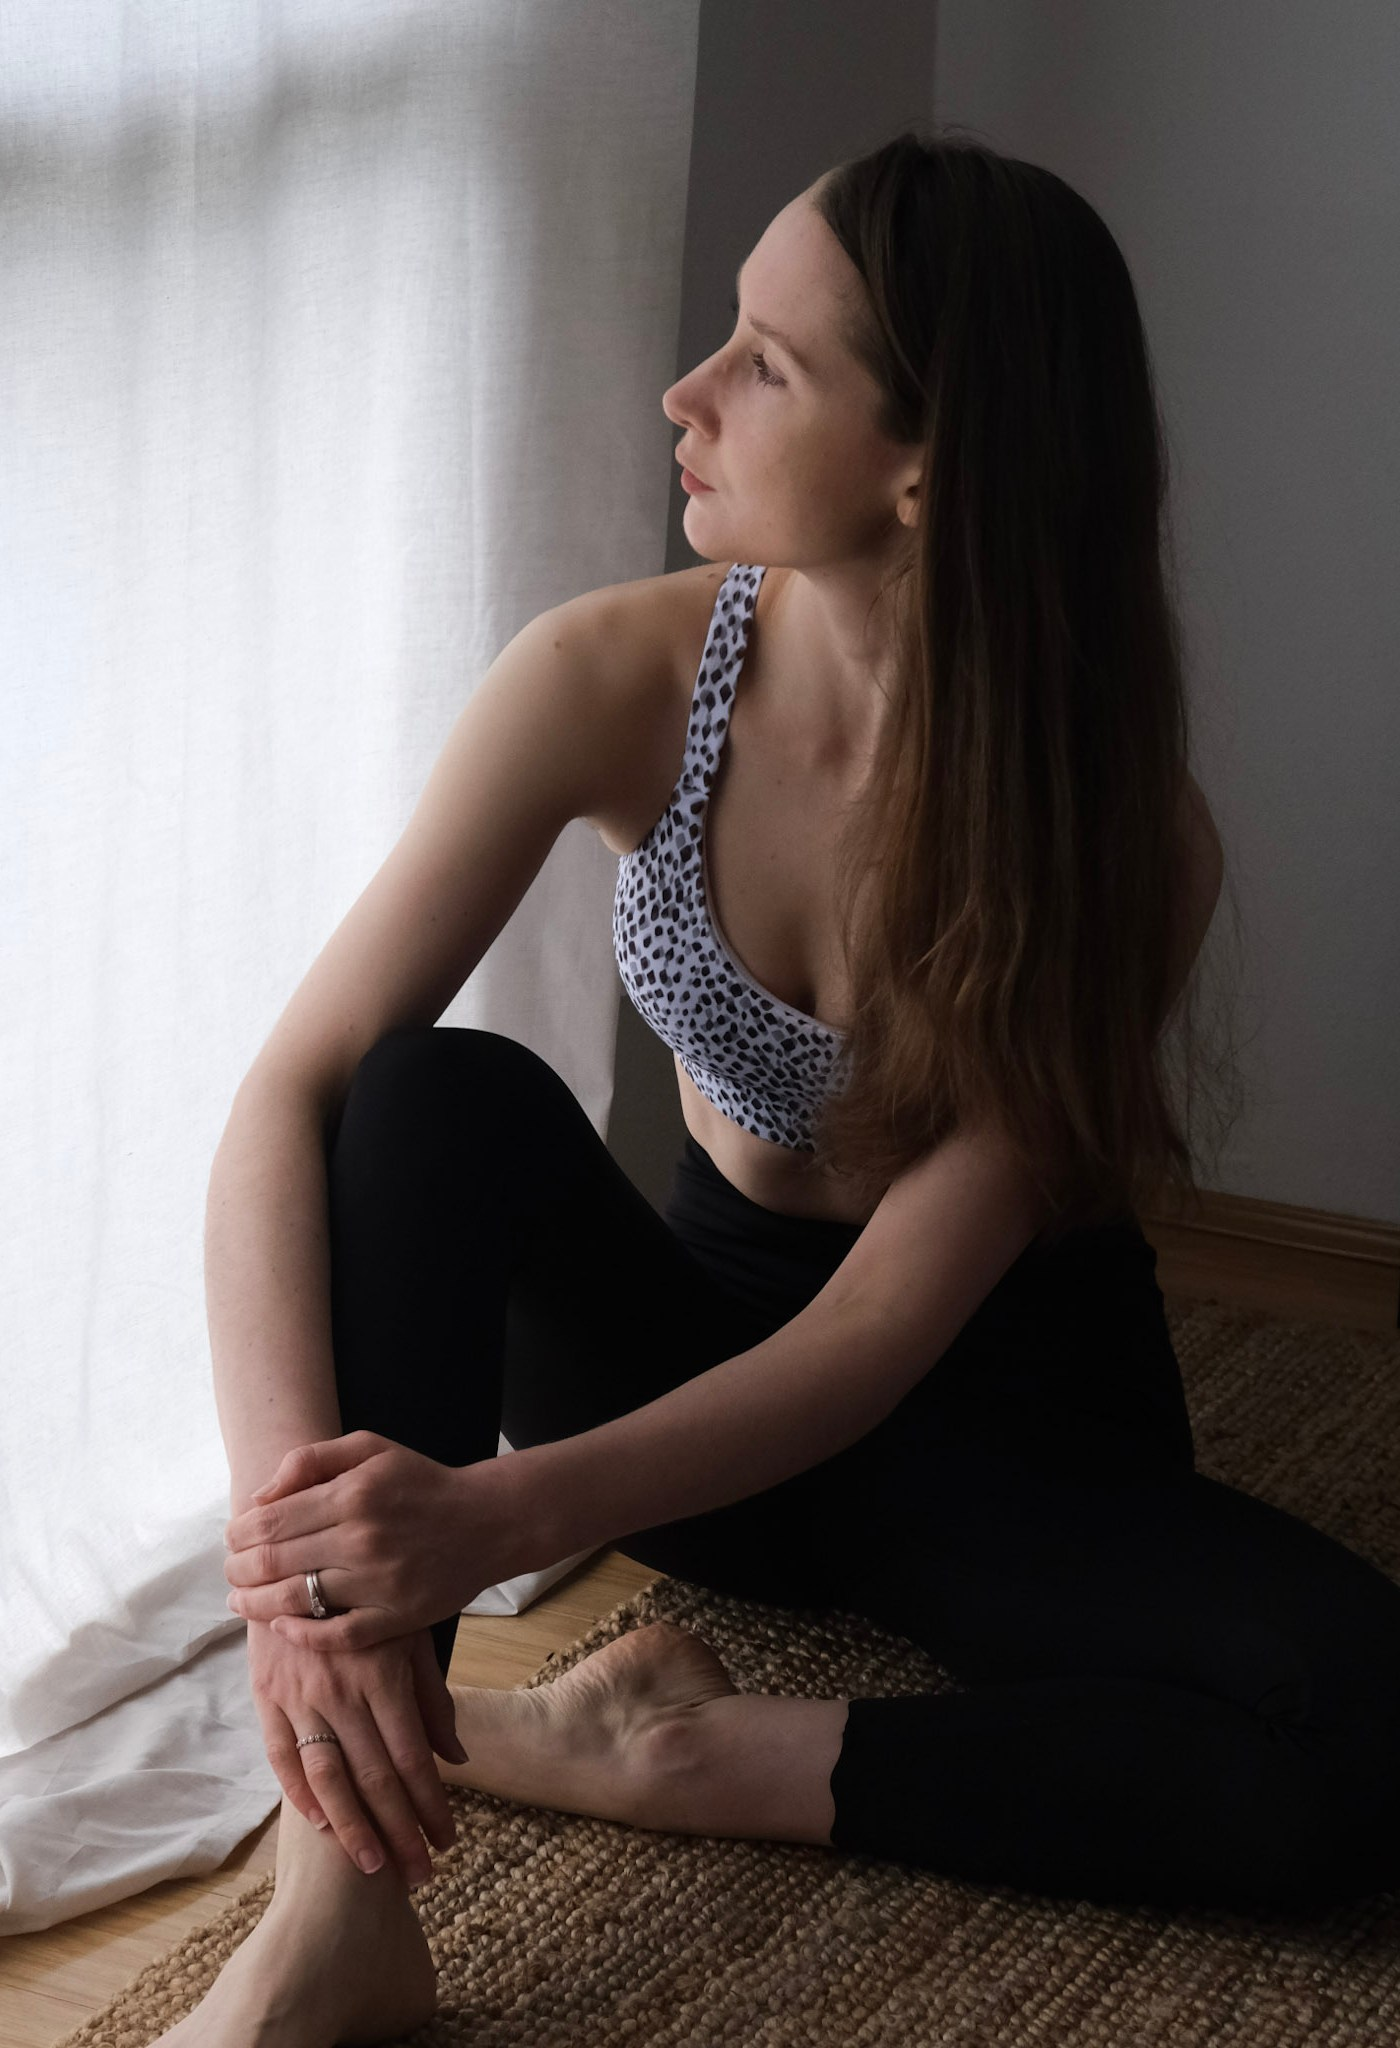 Girl standing in front of white curtains wearing DK Active Saviour crop and Dharma Bums 7/8 scallop leggings in black, sustainable active wear review, DK Active brand review, Australian brands, sustainable clothing, minimalist active wear, active wear capsule wardrobe